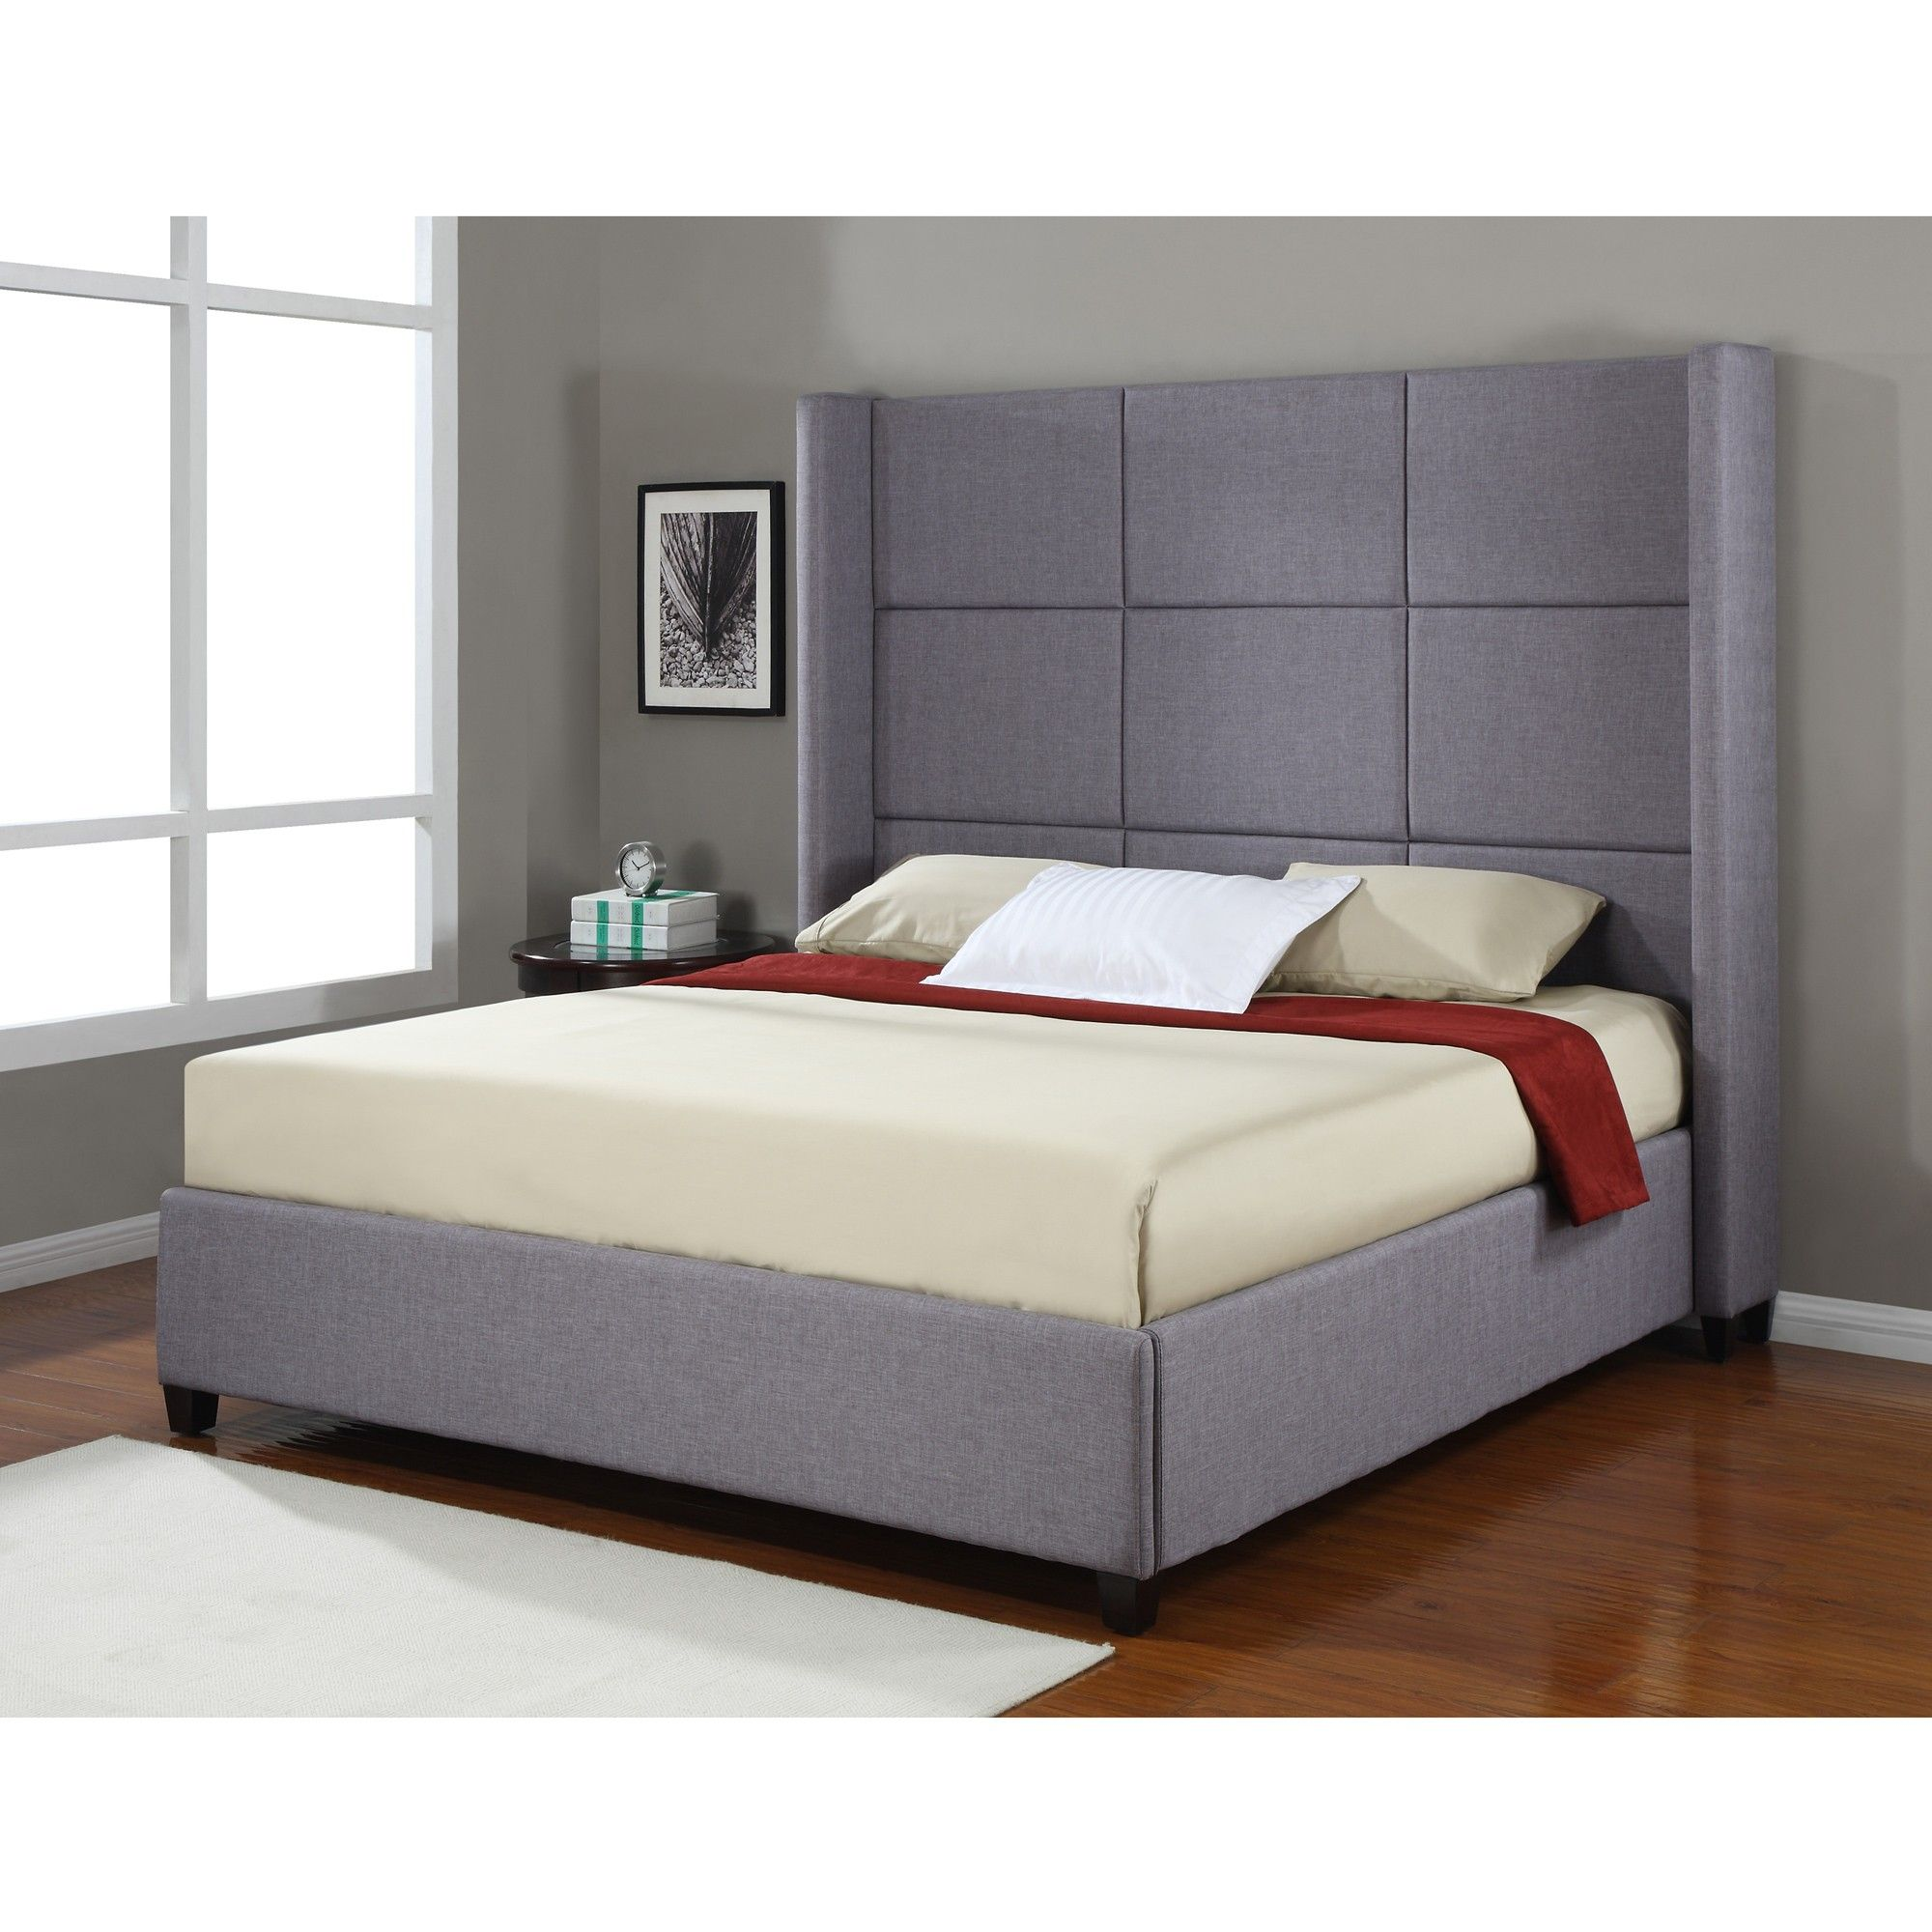 This Grey Polyester Upholstered King Size Bed Will Add Elegance